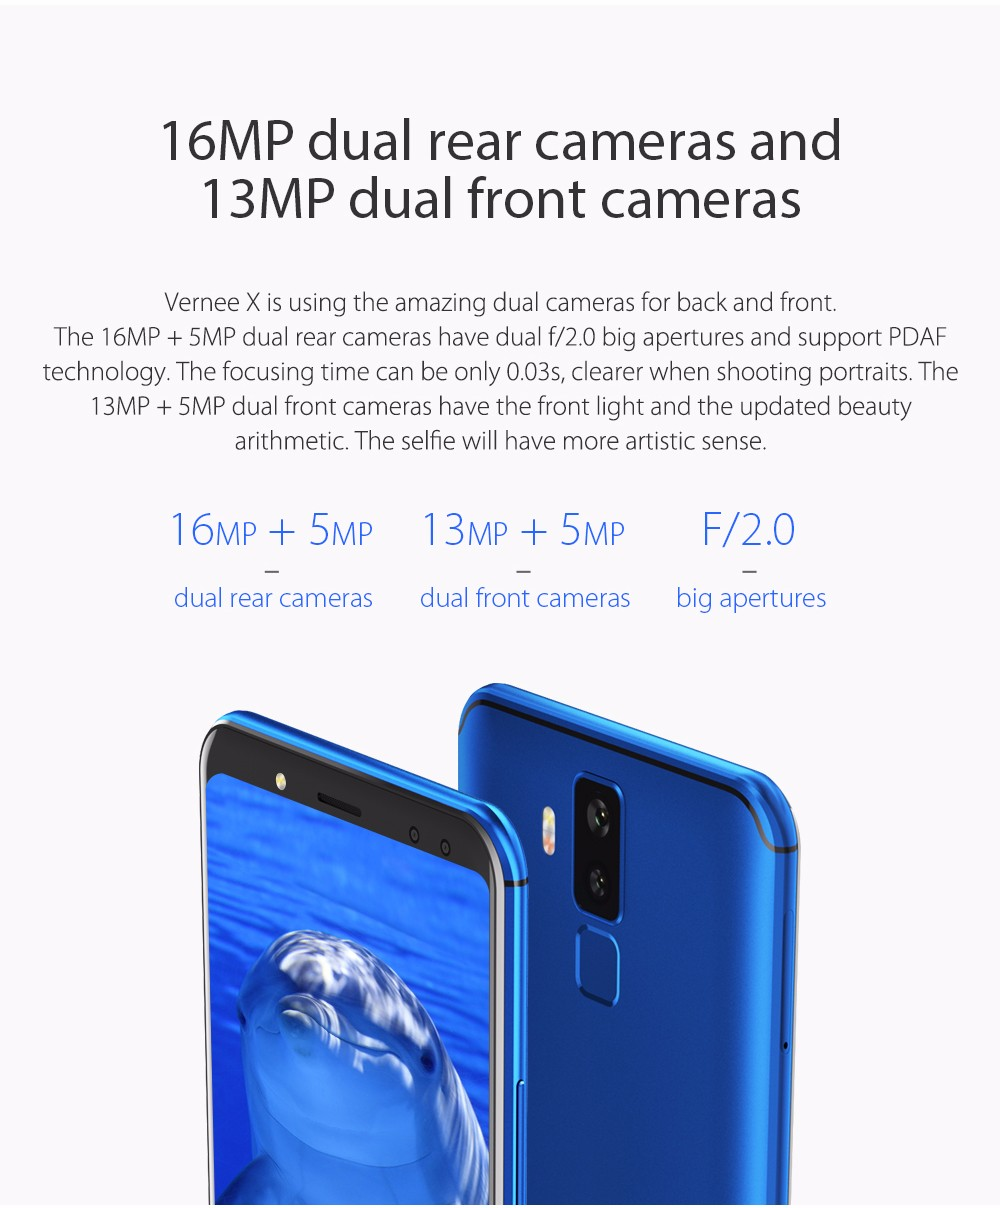 Vernee X 4G Phablet 5.99 inch Android 7.1 MTK6763 2.0GHz Octa Core 6GB RAM 128GB ROM Dual Rear / Front Cameras 6200mAh Battery